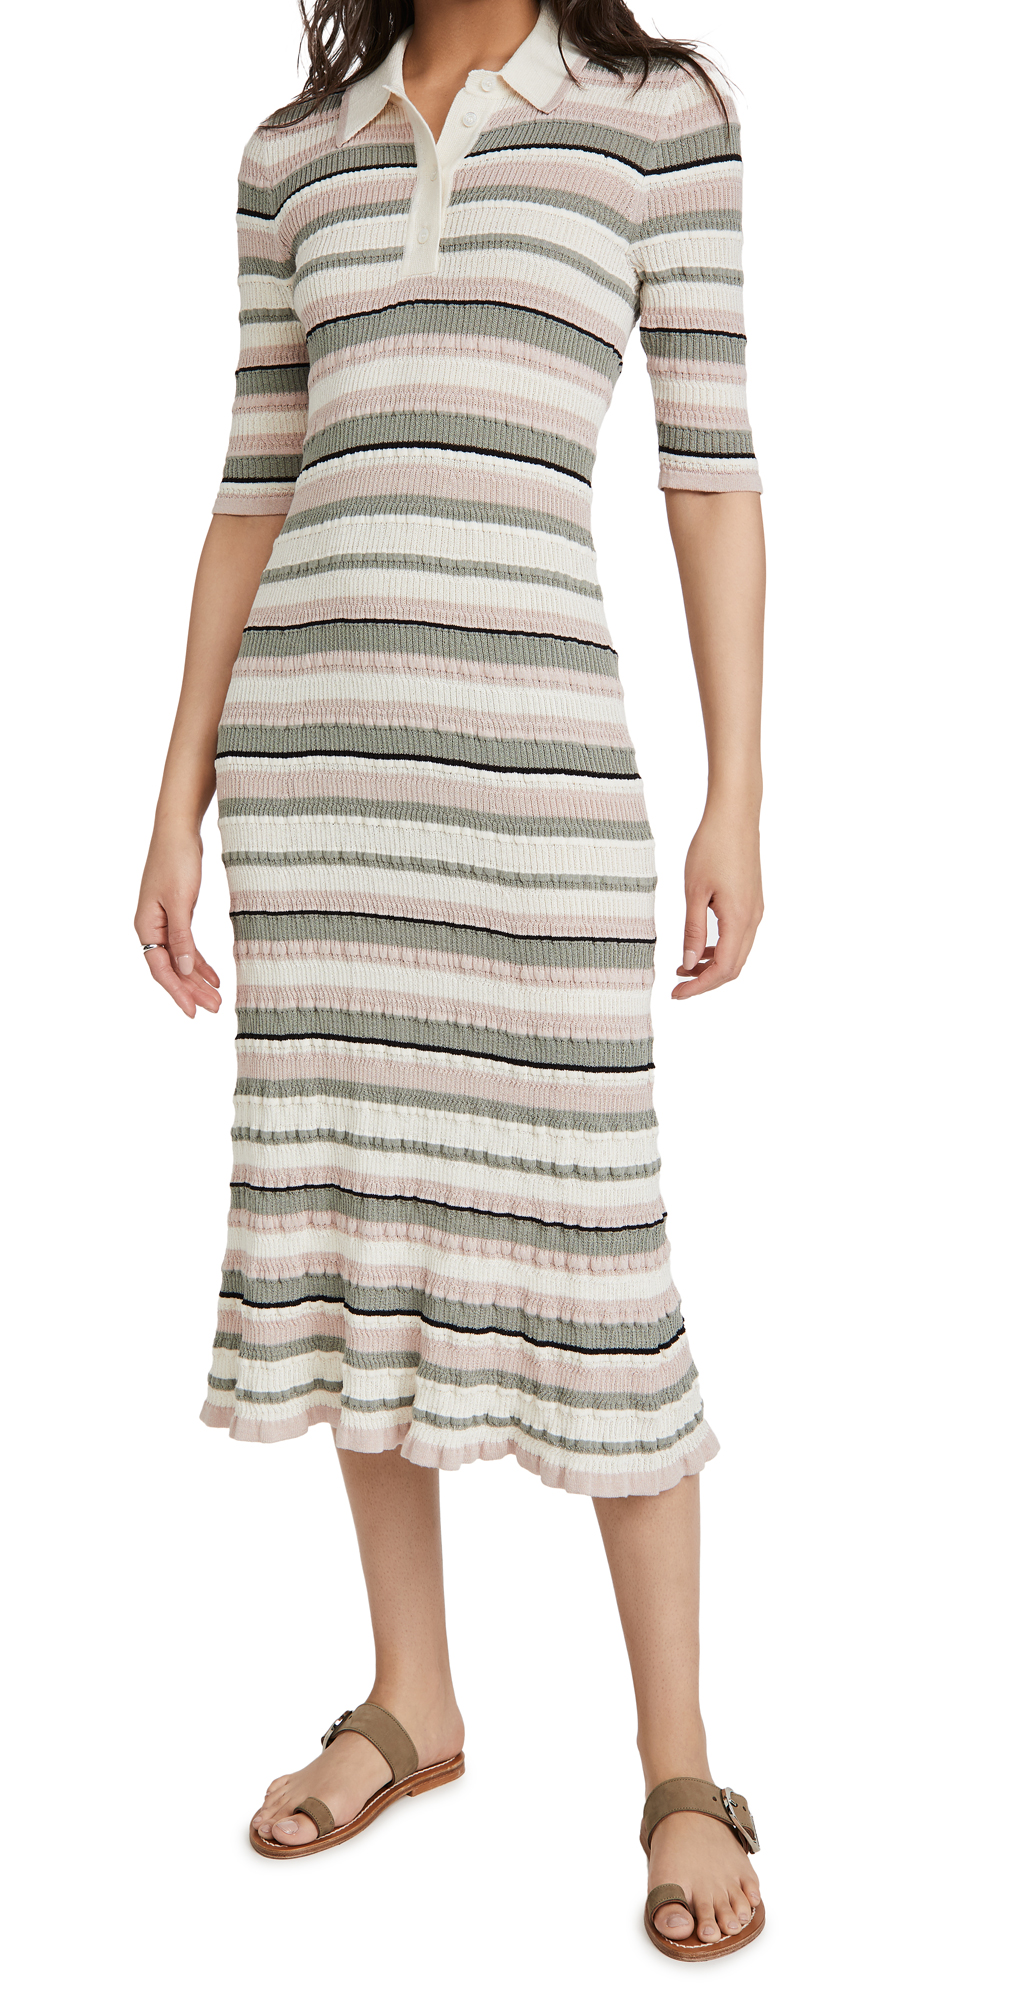 Adam Lippes Polo Dress In Cotton Crepe Yarn